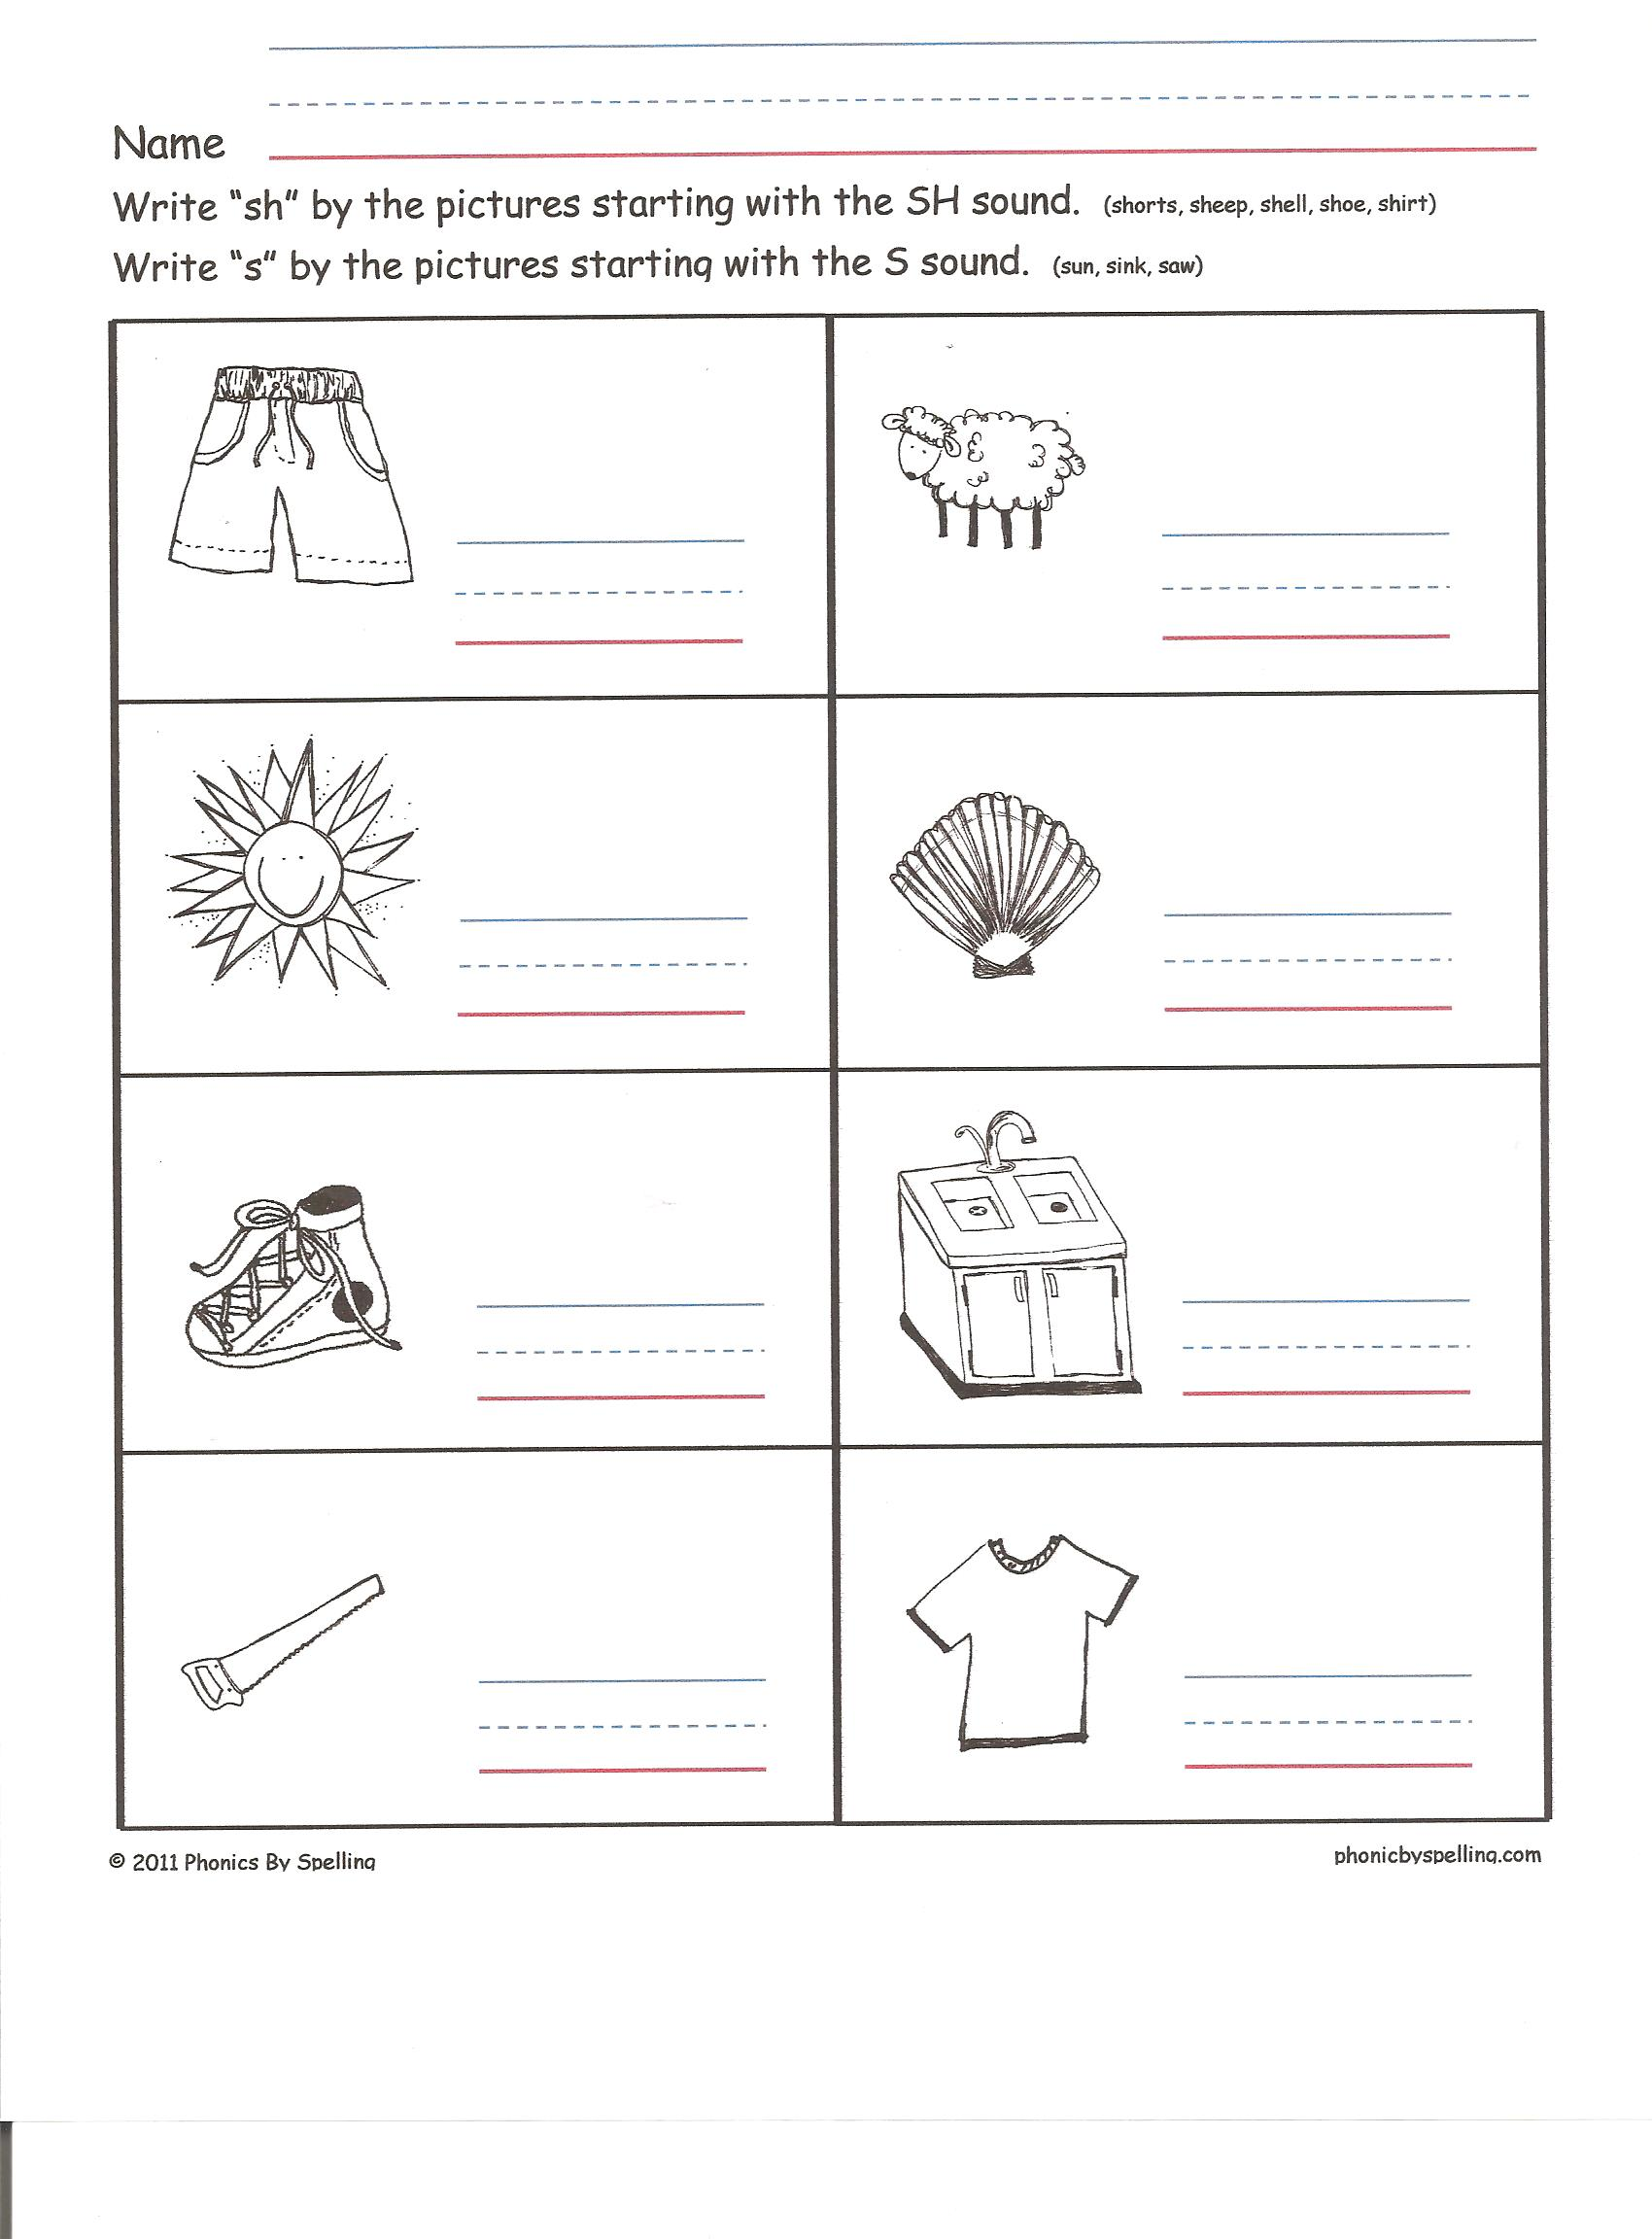 Uncategorized Sh Worksheets or dont use phonics by spellings blog worksheet for sh 001